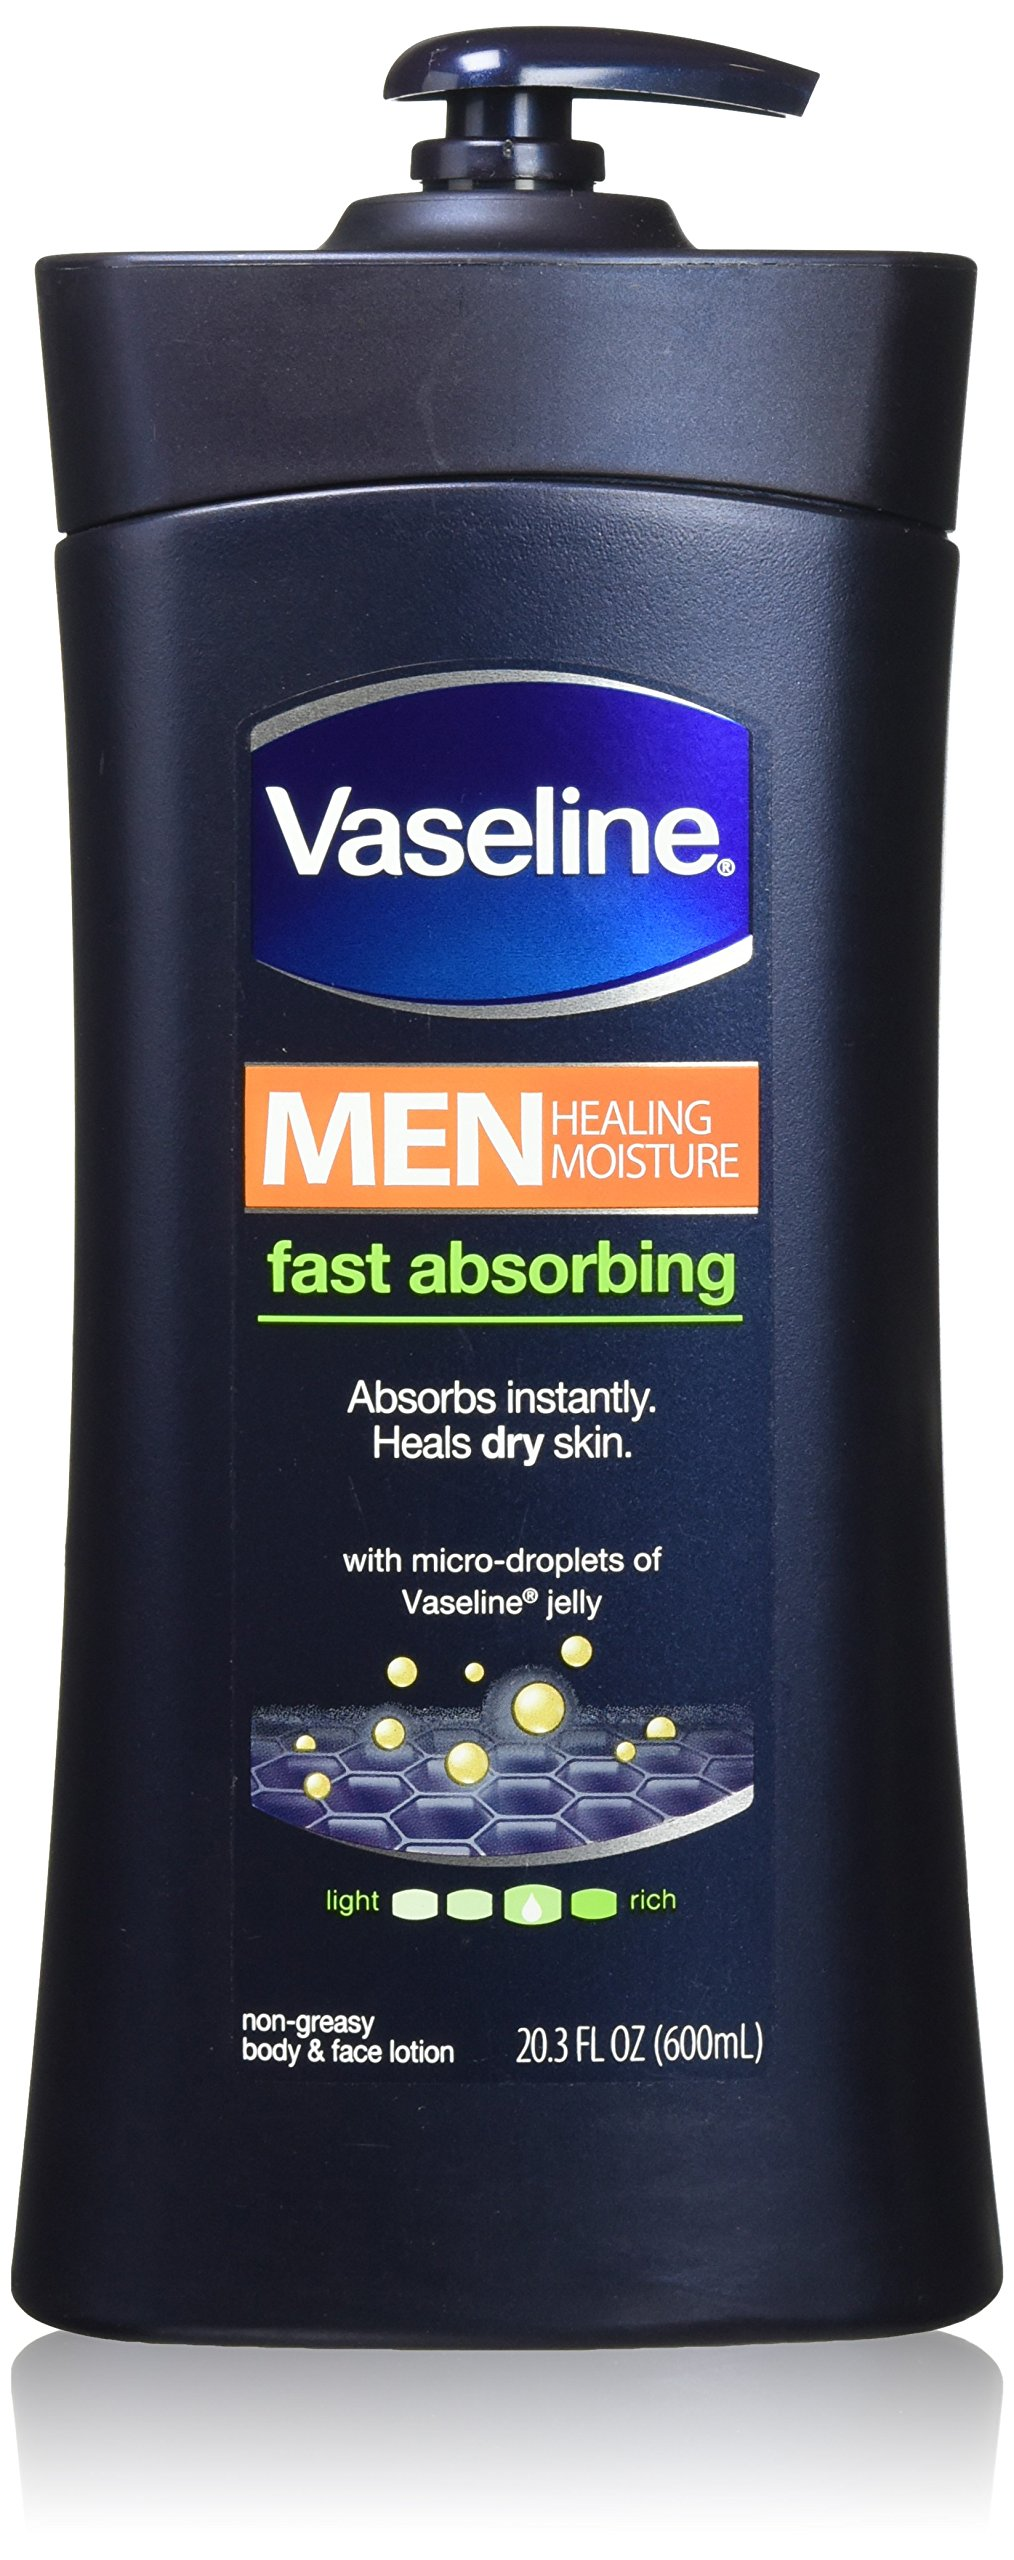 Vaseline Men Body and Face Lotion , 20.3 Ounce Bottle(Pack of 2) by Vaseline